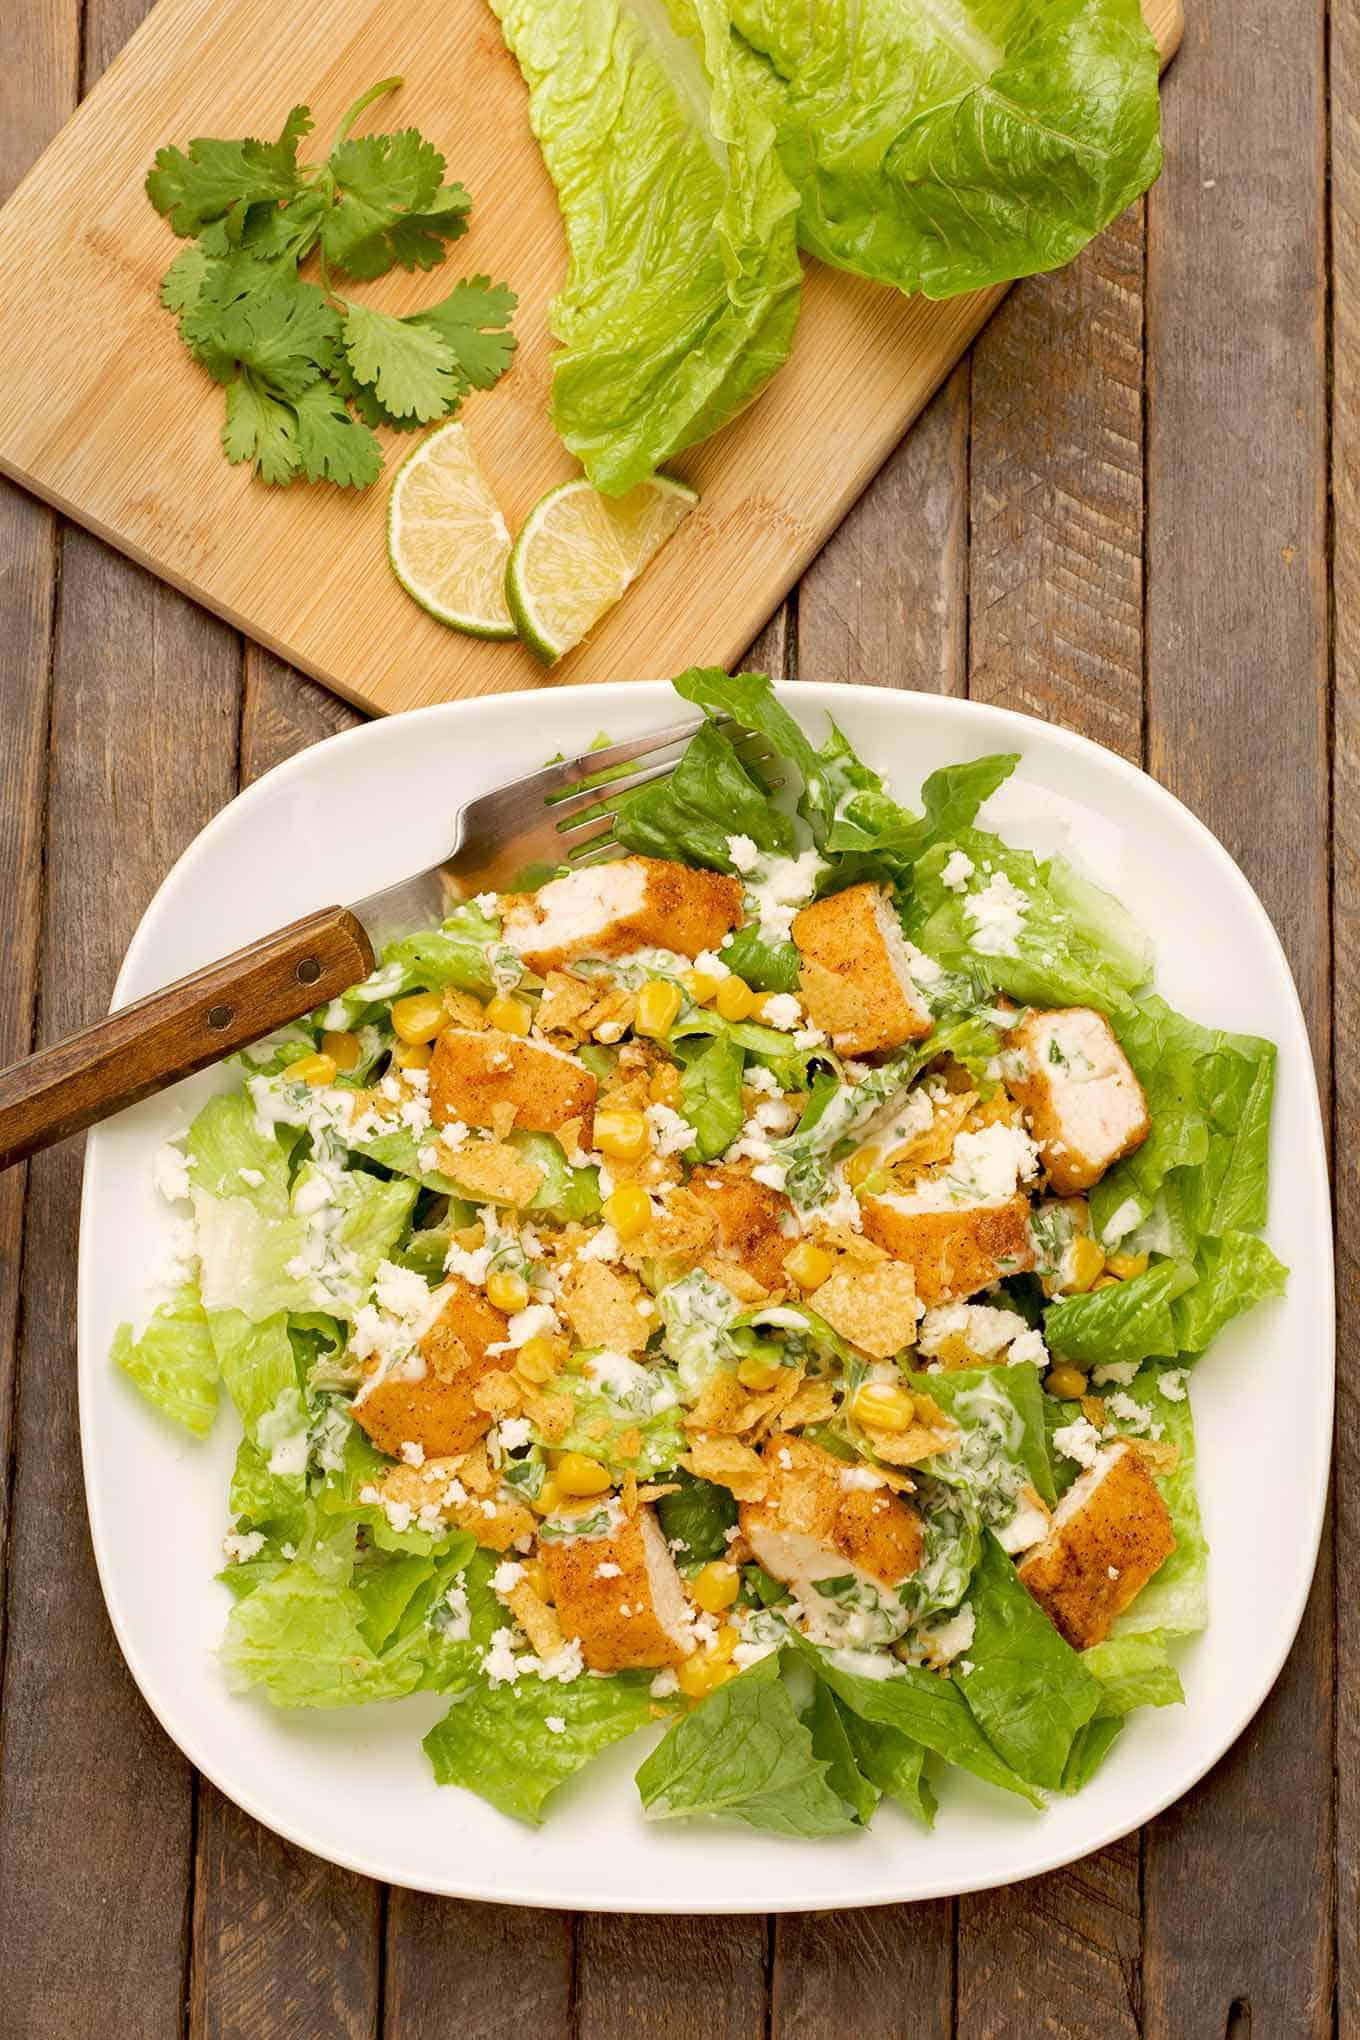 Mexican Caesar salad on a plate with some of the ingredients on a cutting board in the background.